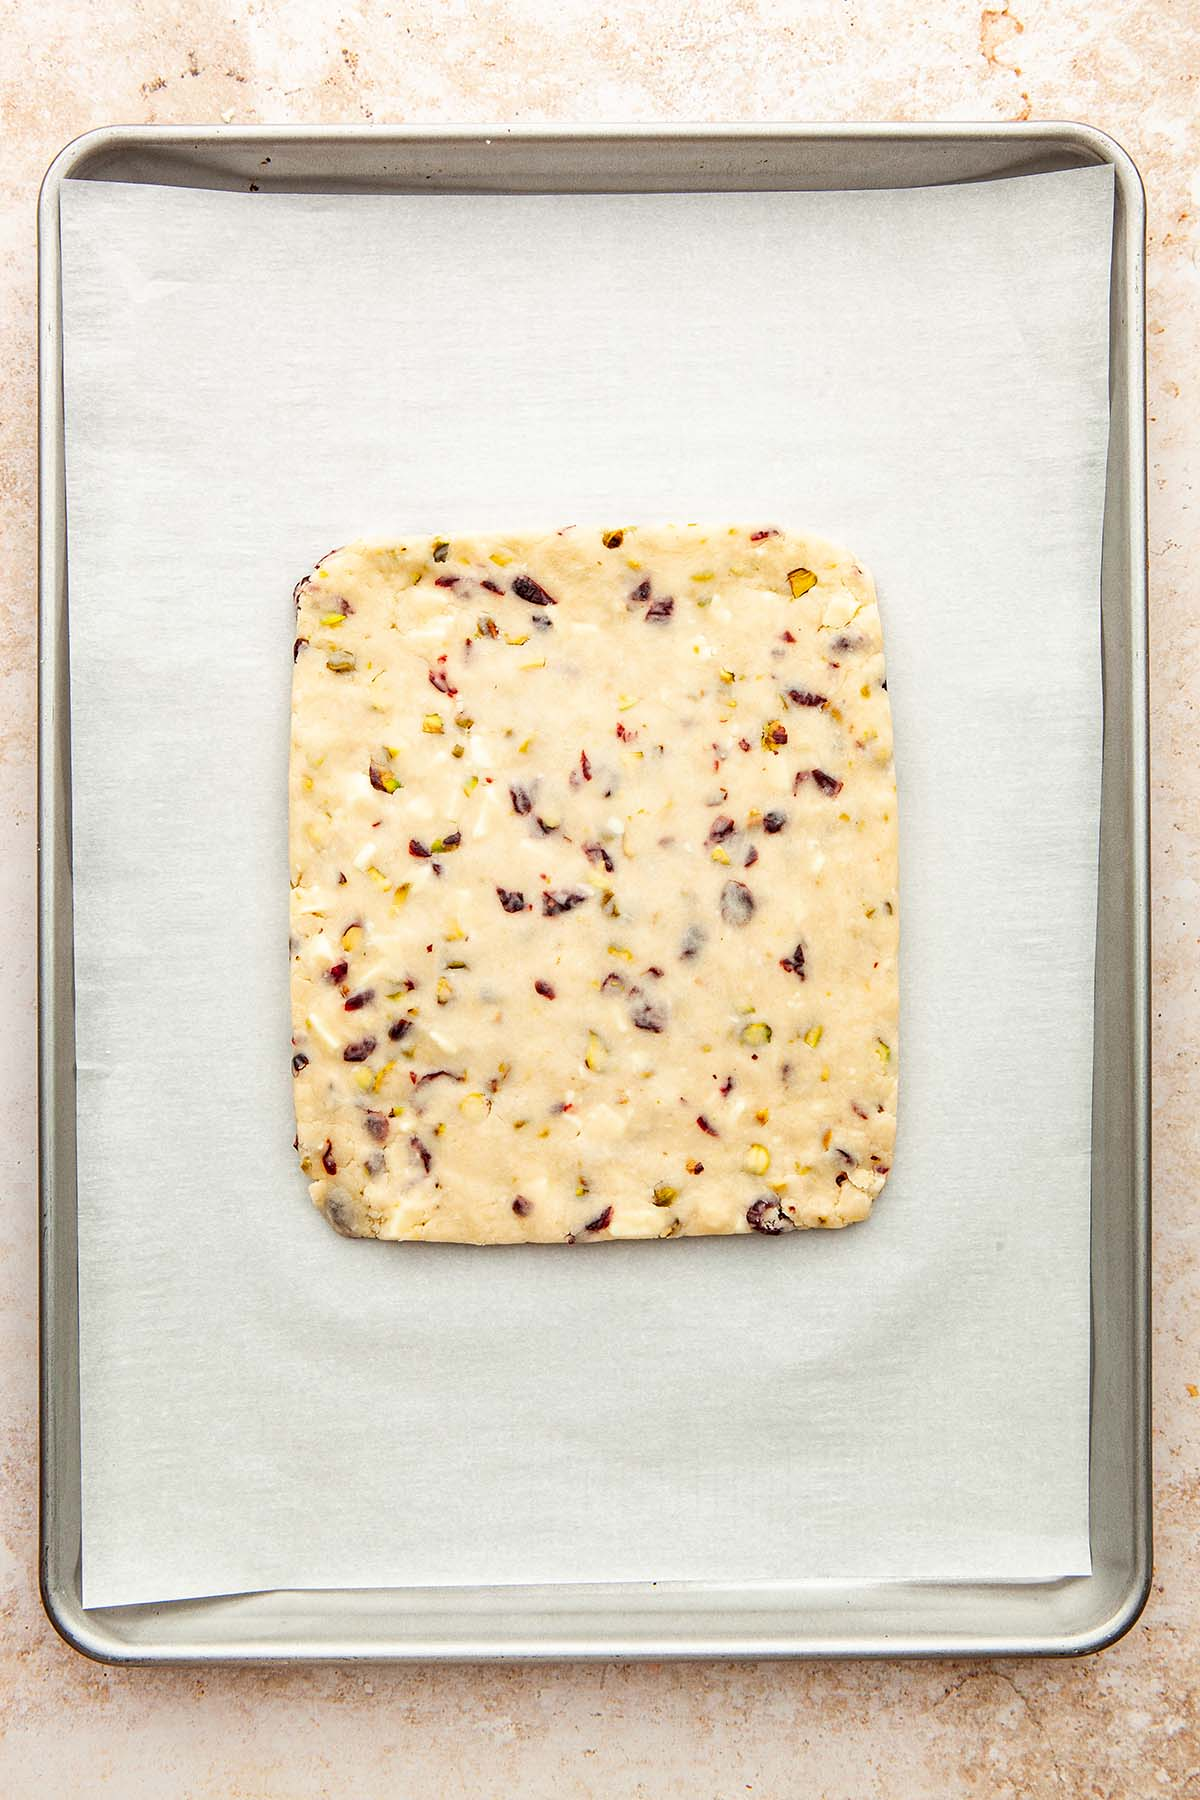 An unbaked rectangle cookie slab on a parchment paper-lined baking sheet.